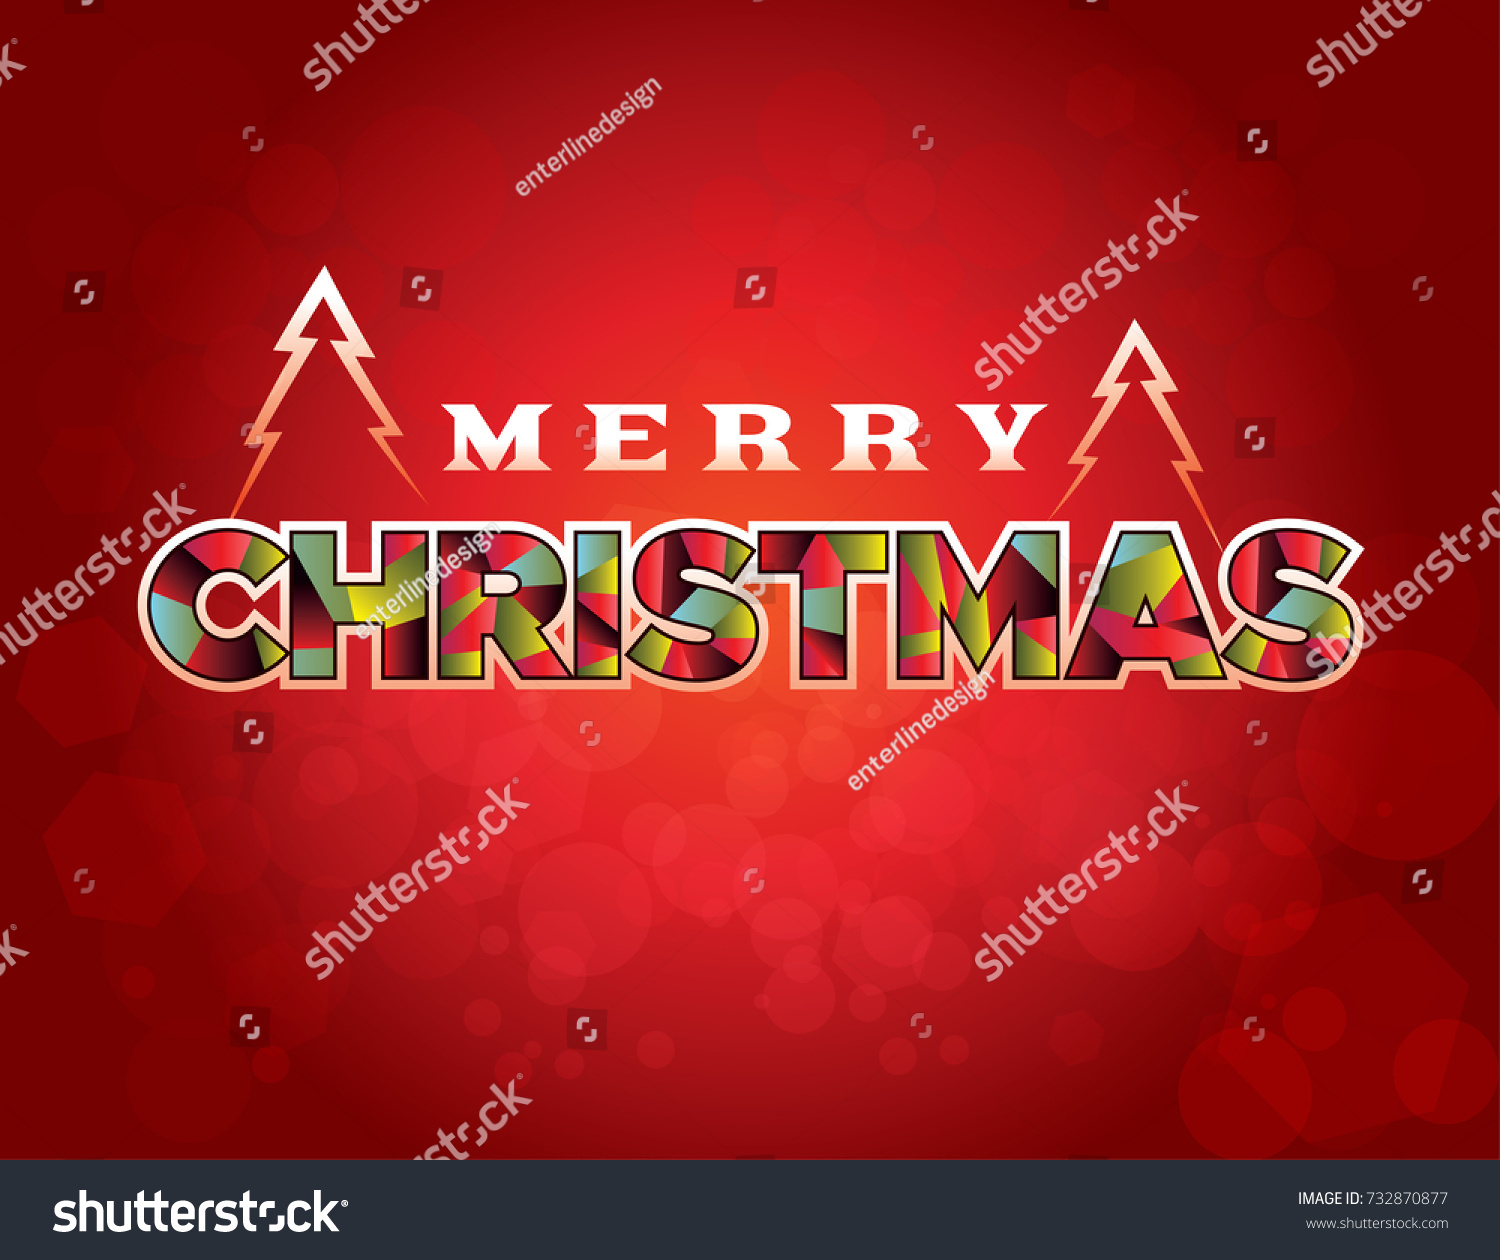 Merry christmas holiday greeting message written stock illustration merry christmas holiday greeting message written in stylized type on a red background illustration m4hsunfo Choice Image